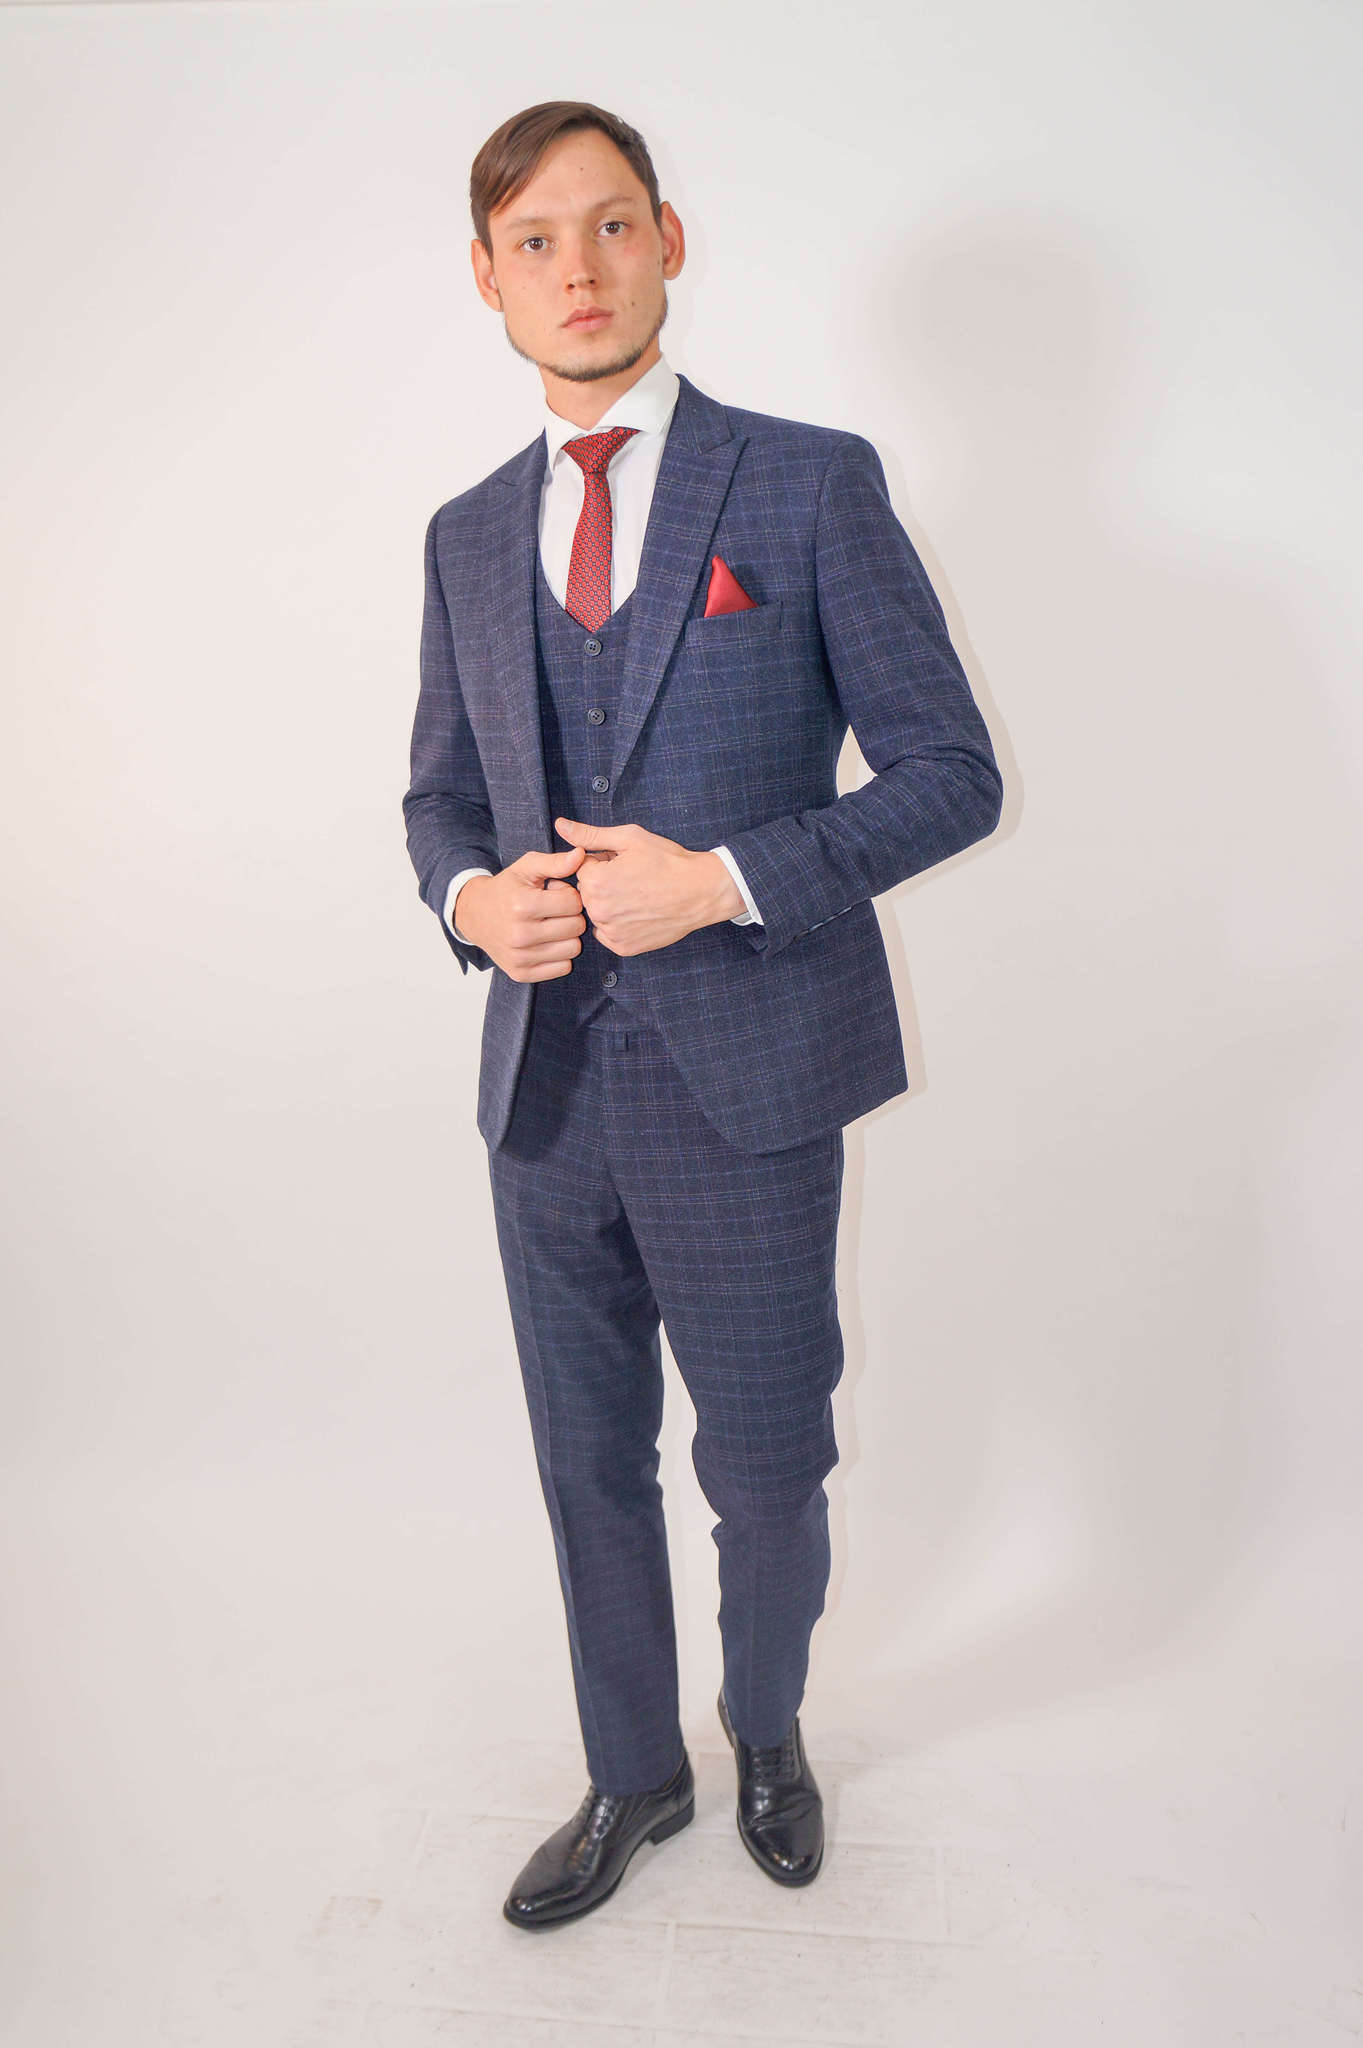 Костюмы Slim fit CESARE MARIANO / Костюм - тройка slim fit DSC02320.jpg